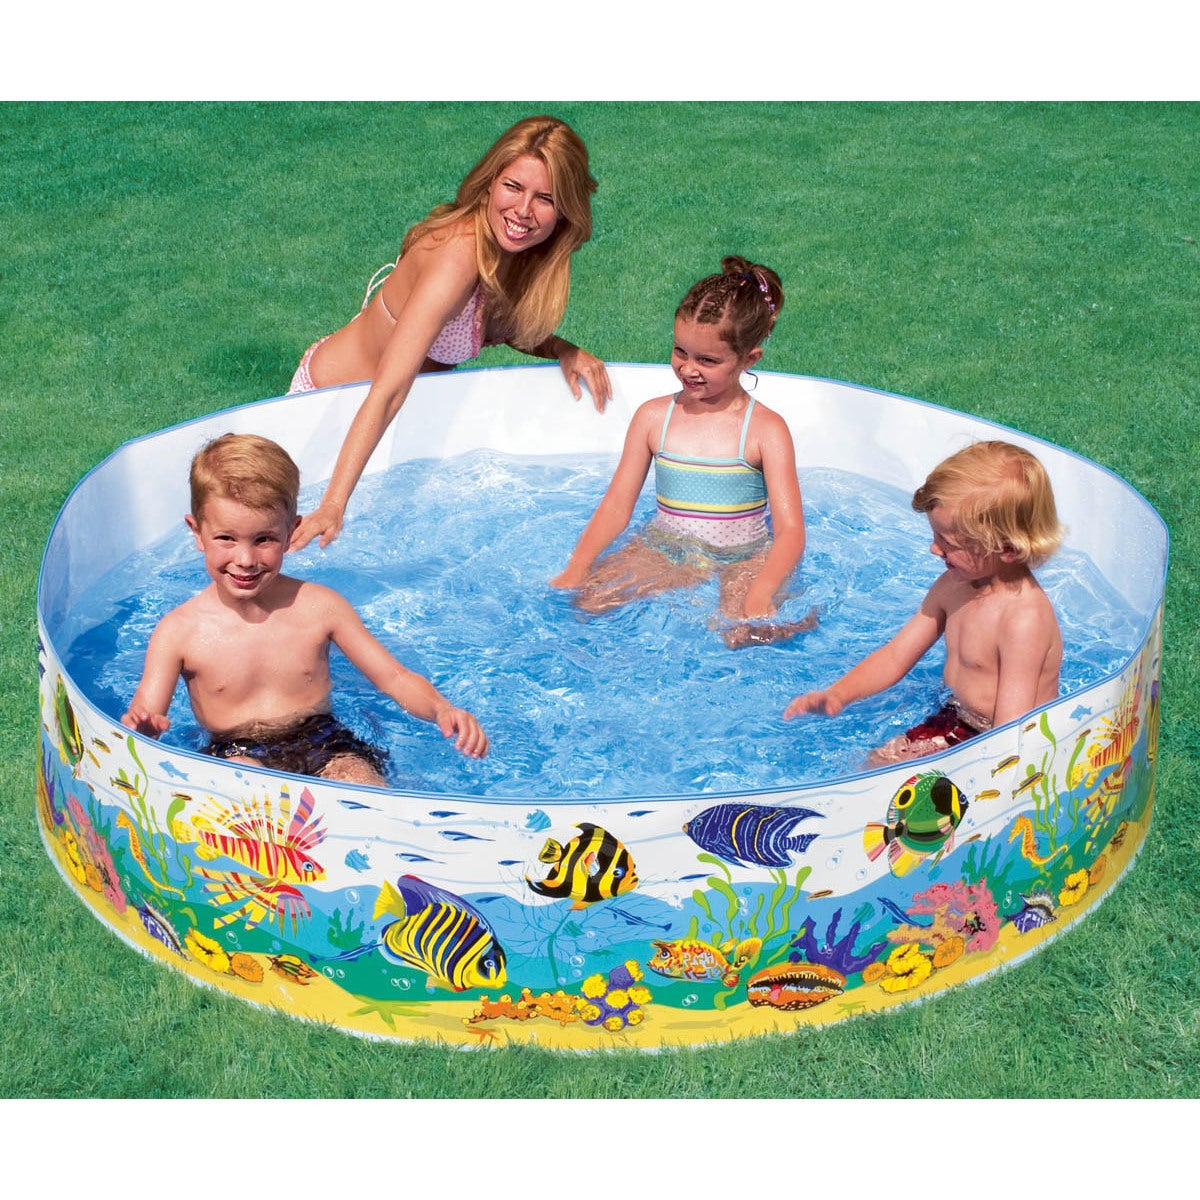 Intex Recreation 6-foot by 15-inch Ocean Reef Snapset Poo...